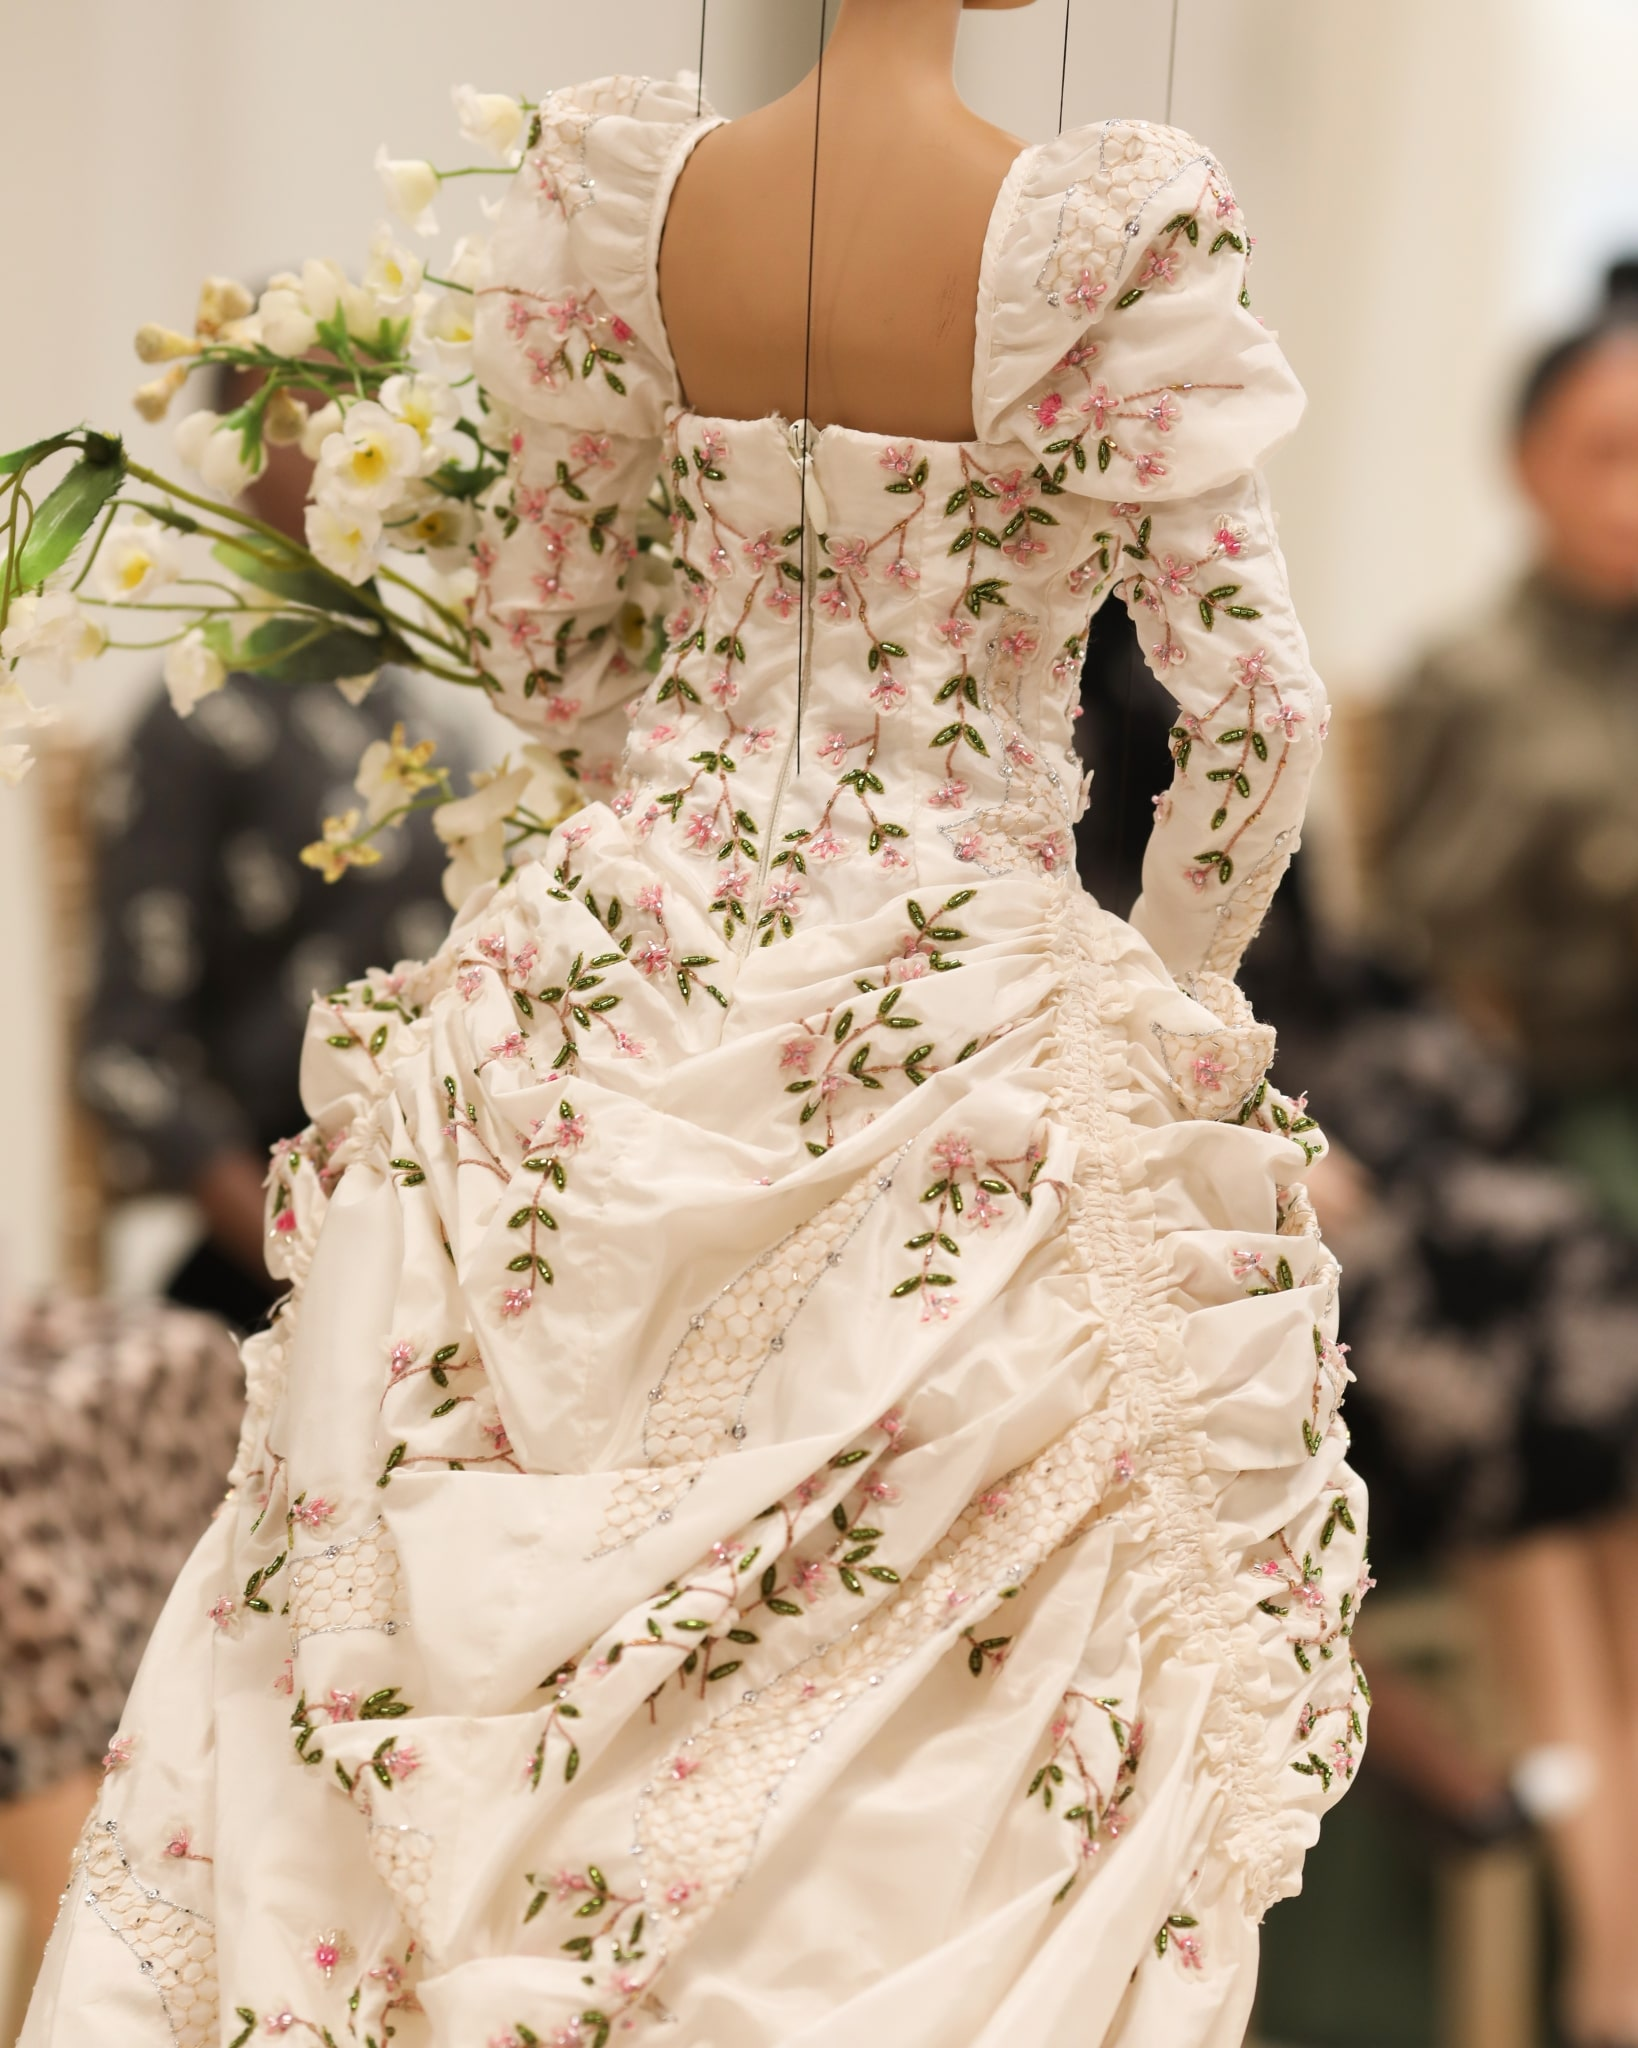 Marionnette portant une robe Moschino